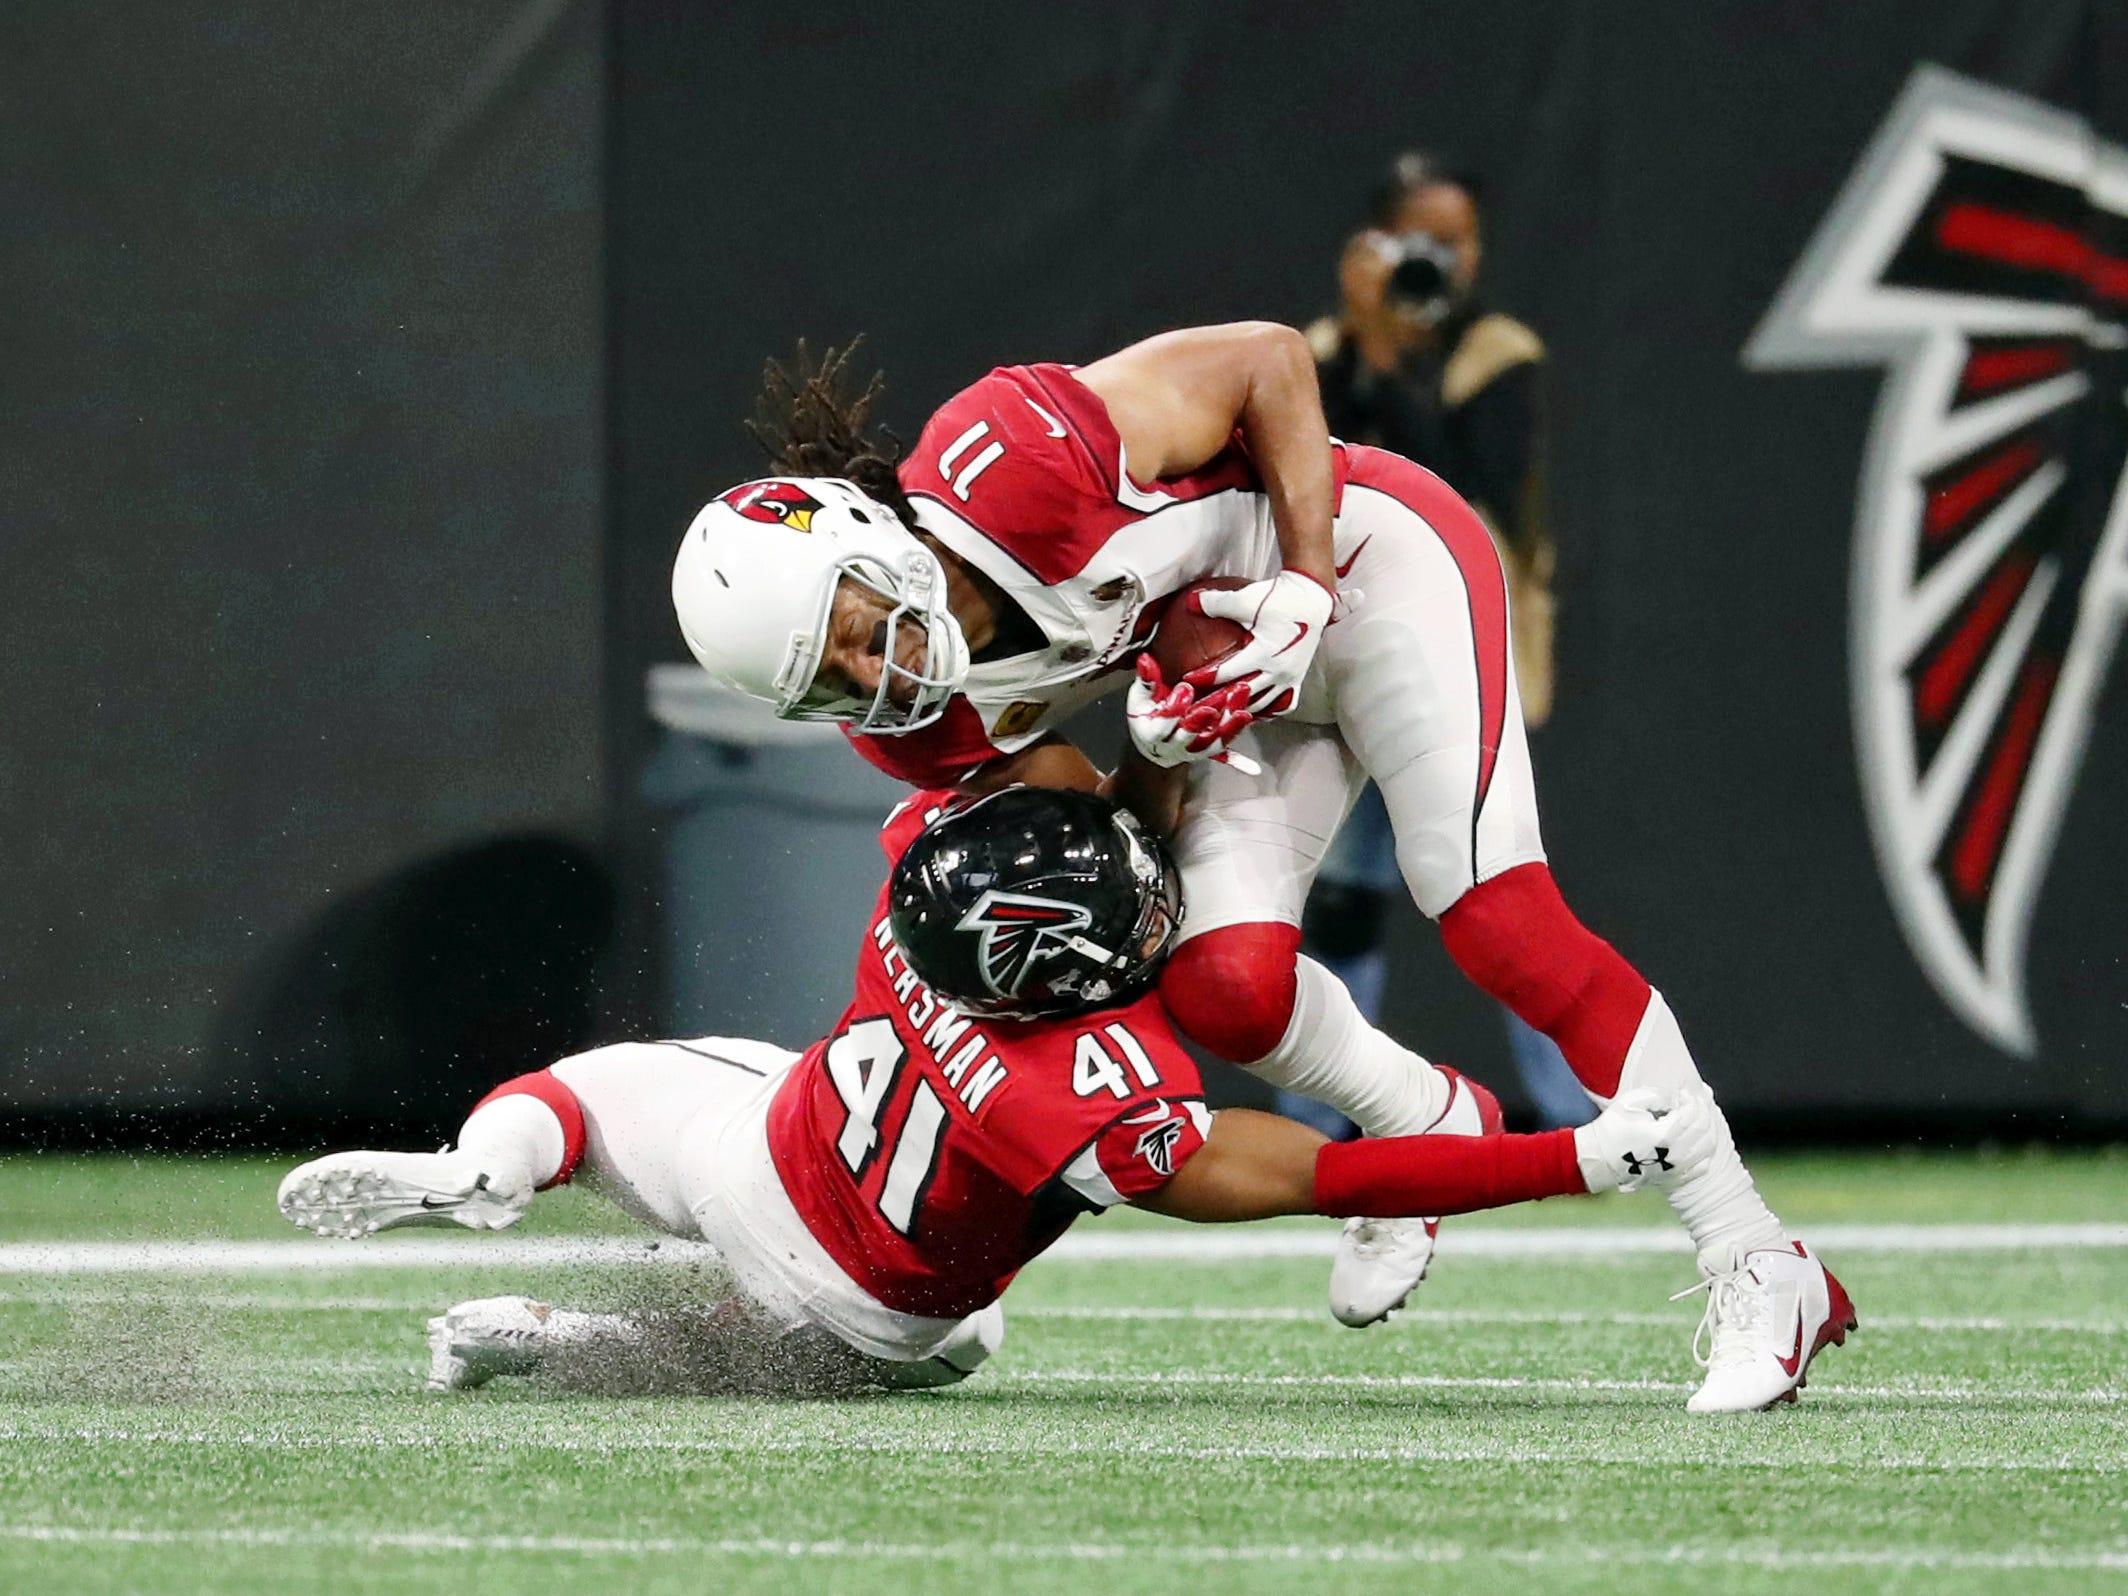 Dec 16, 2018; Atlanta, GA, USA; Arizona Cardinals wide receiver Larry Fitzgerald (11) is tackled by Atlanta Falcons defensive back Sharrod Neasman (41) in the second quarter at Mercedes-Benz Stadium.